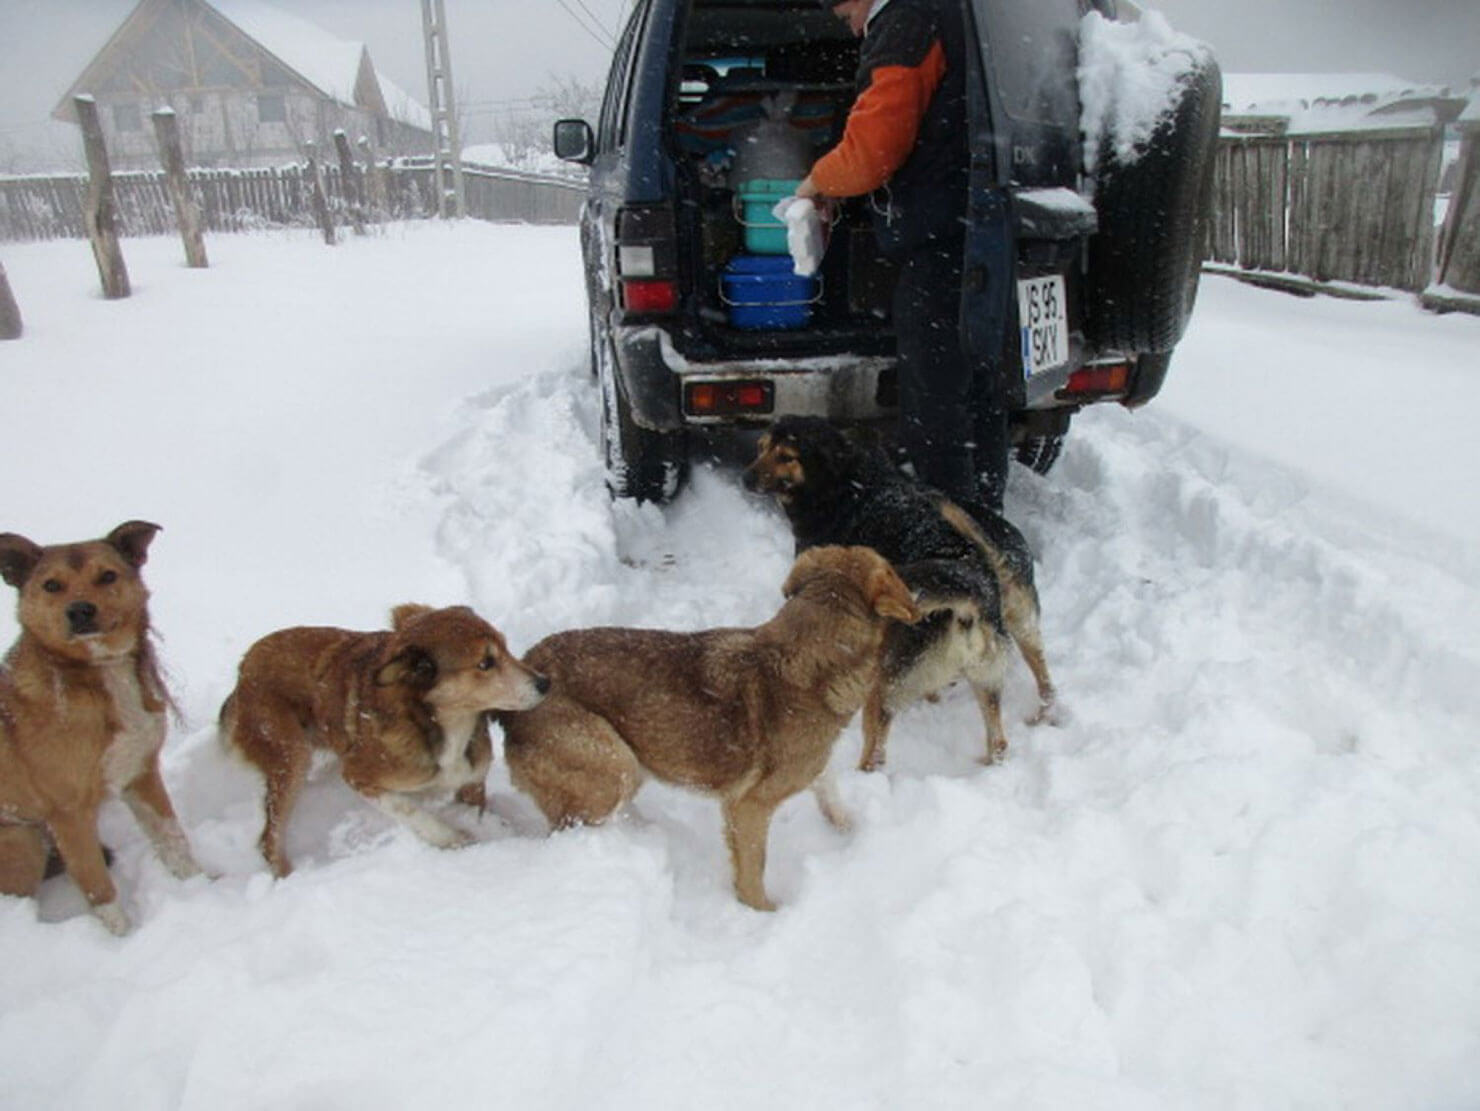 Rescuer feeding dogs in the deep snow